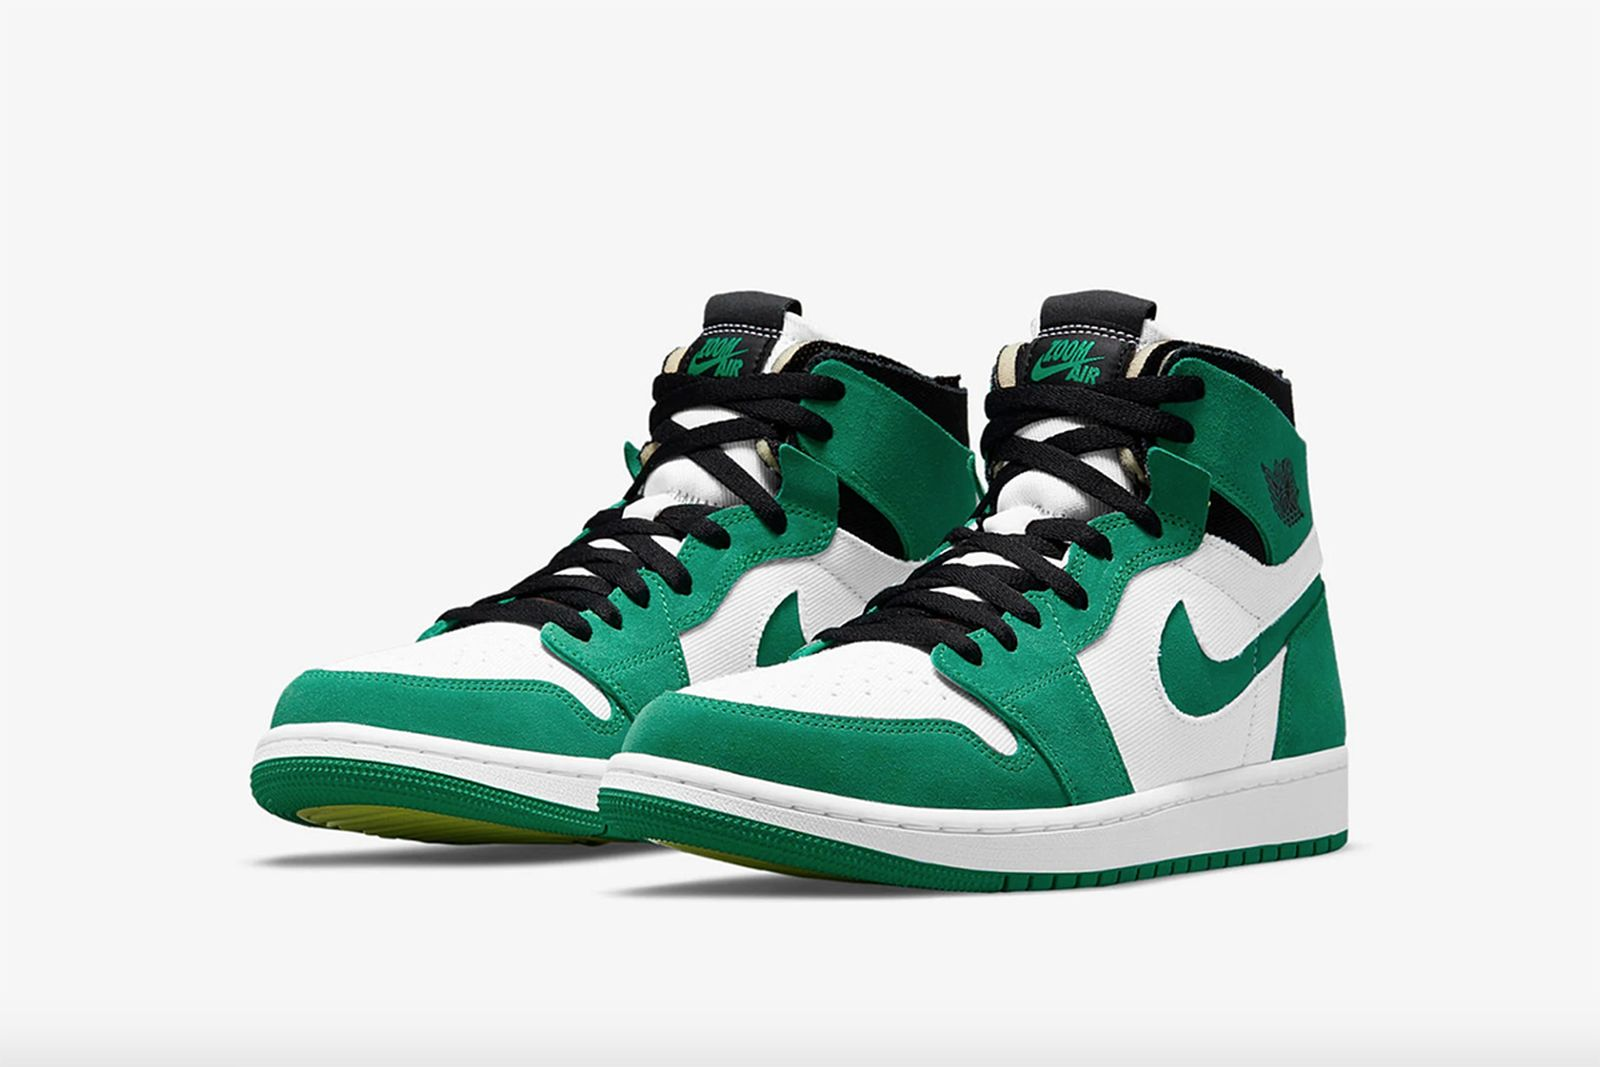 nike-air-jordan-1-zoom-cmft-stadium-green-release-date-price-01